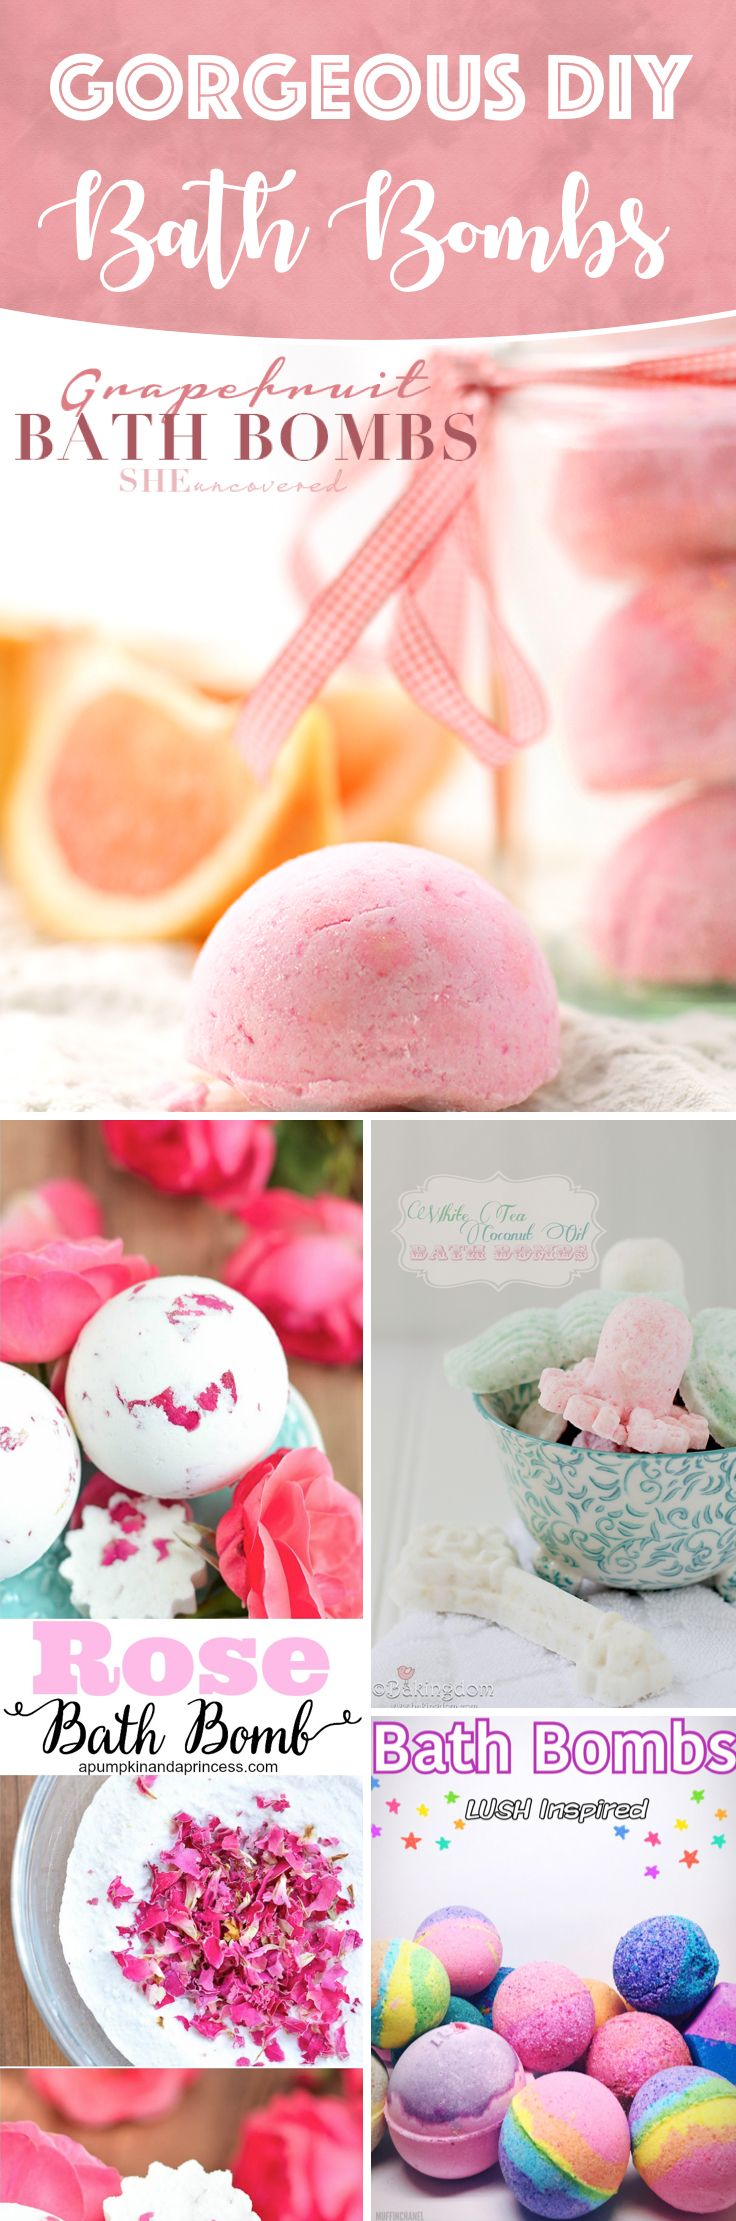 Forum on this topic: Relaxing And Pretty DIY Bath Bombs To , relaxing-and-pretty-diy-bath-bombs-to/